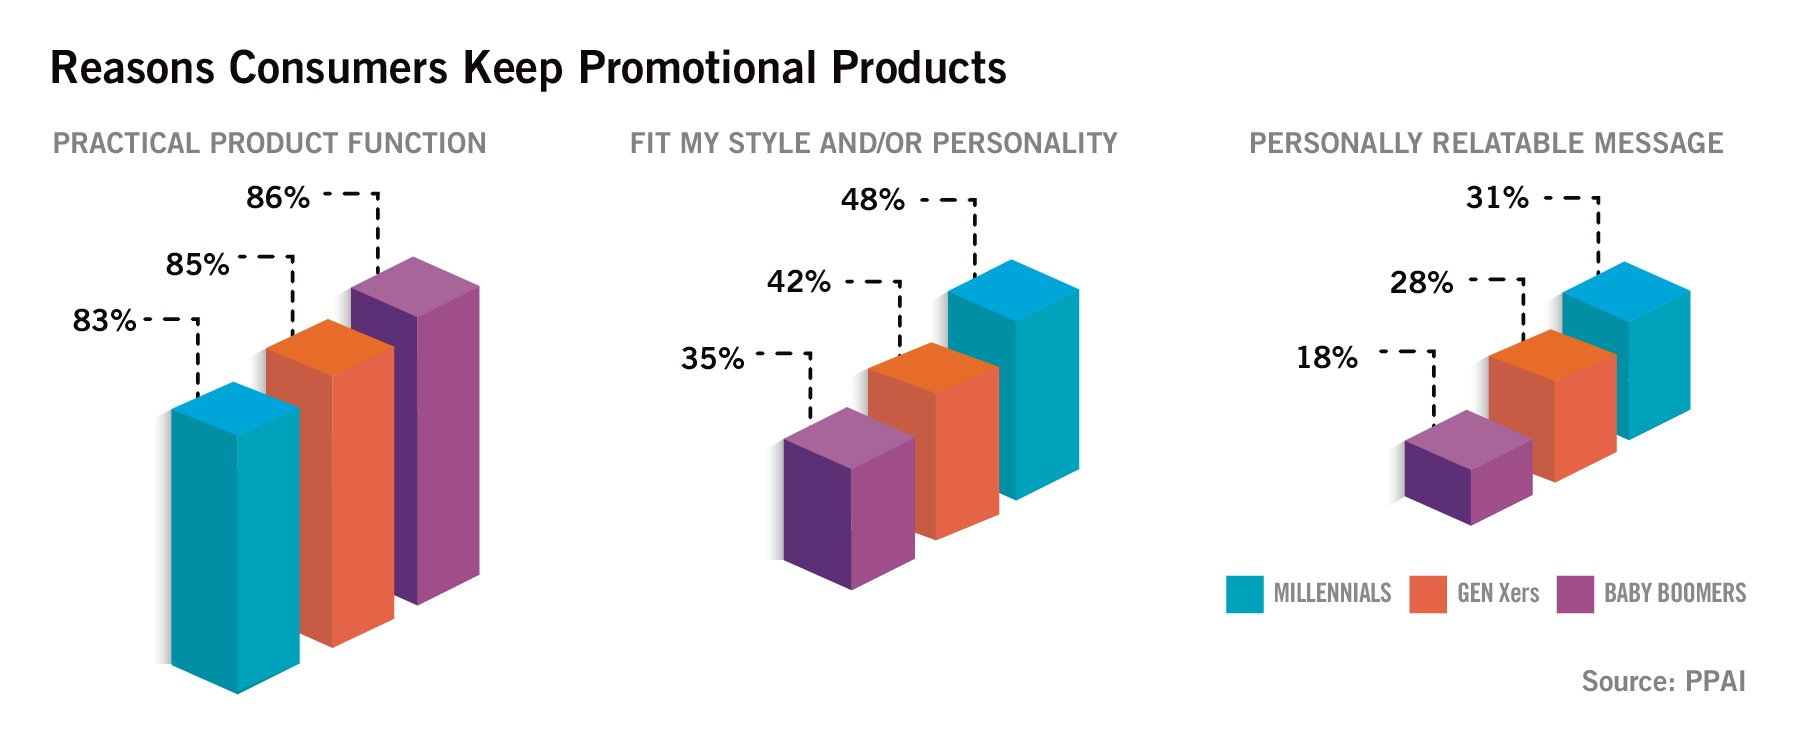 PPAI: Reasons Consumers Keep Promotional Products